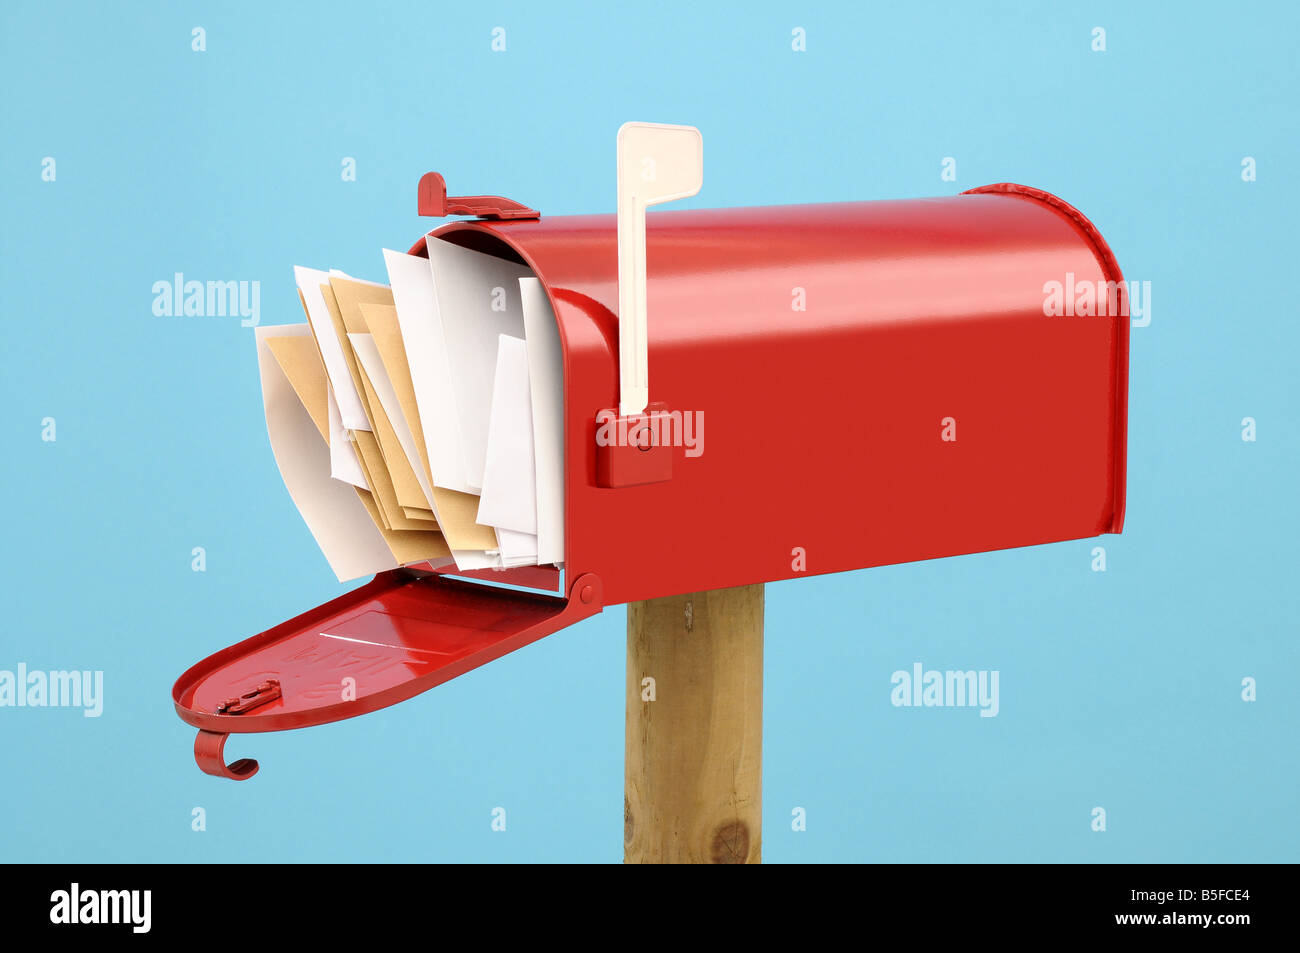 US Mailbox full of letters - Stock Image